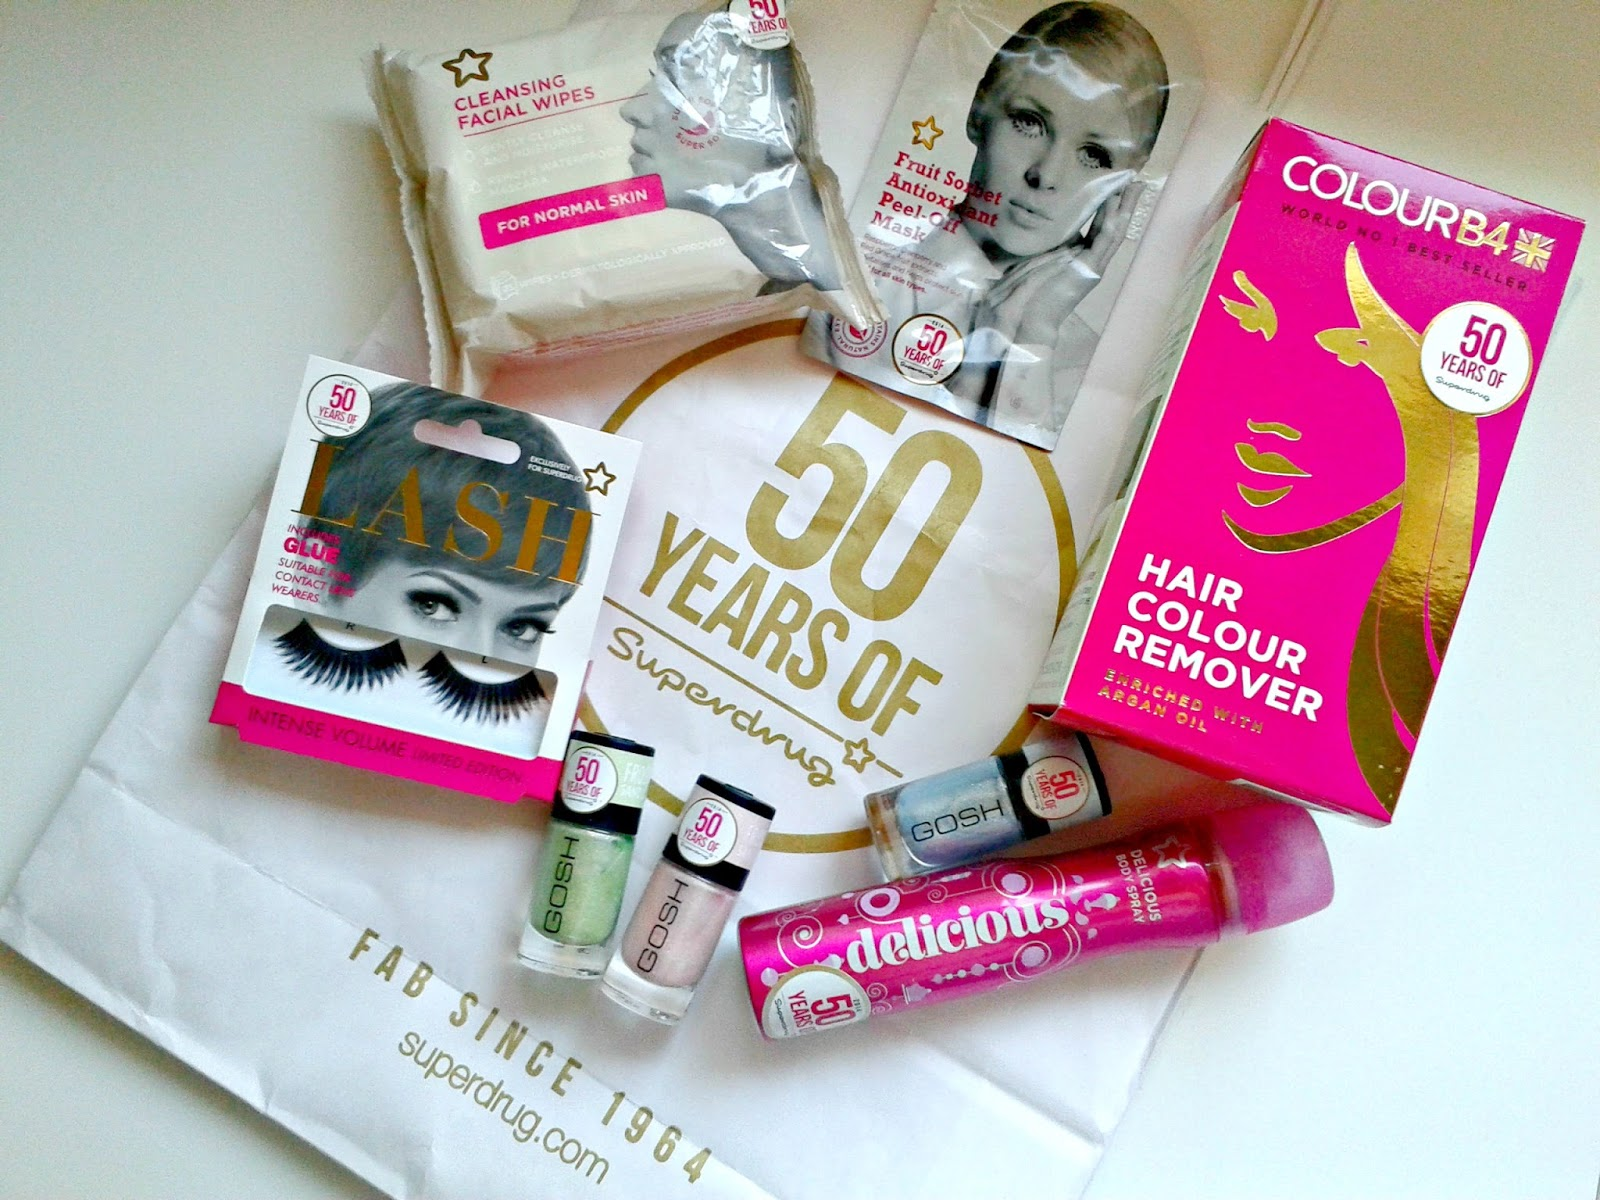 The Happy 50th Birthday Superdrug Haul 50 Years of Superdrug GOSH Nail lacquers Colour B4 Colour